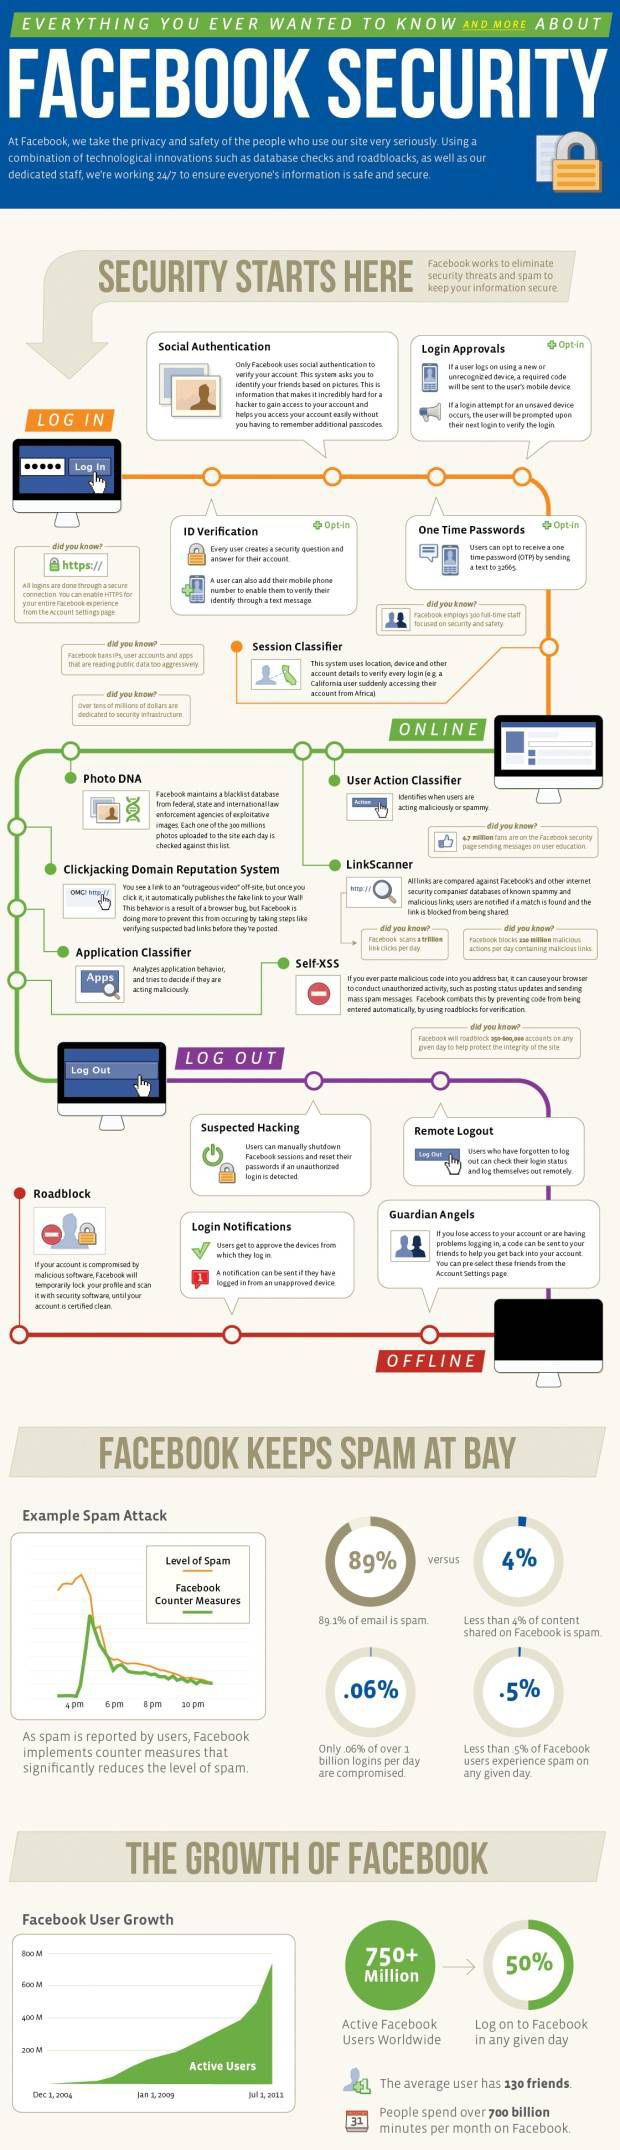 Facebook security explained.  According to a 2011 report, 4% of all Facebook content is spam and .06% of over one-billion logins are compromised each day.